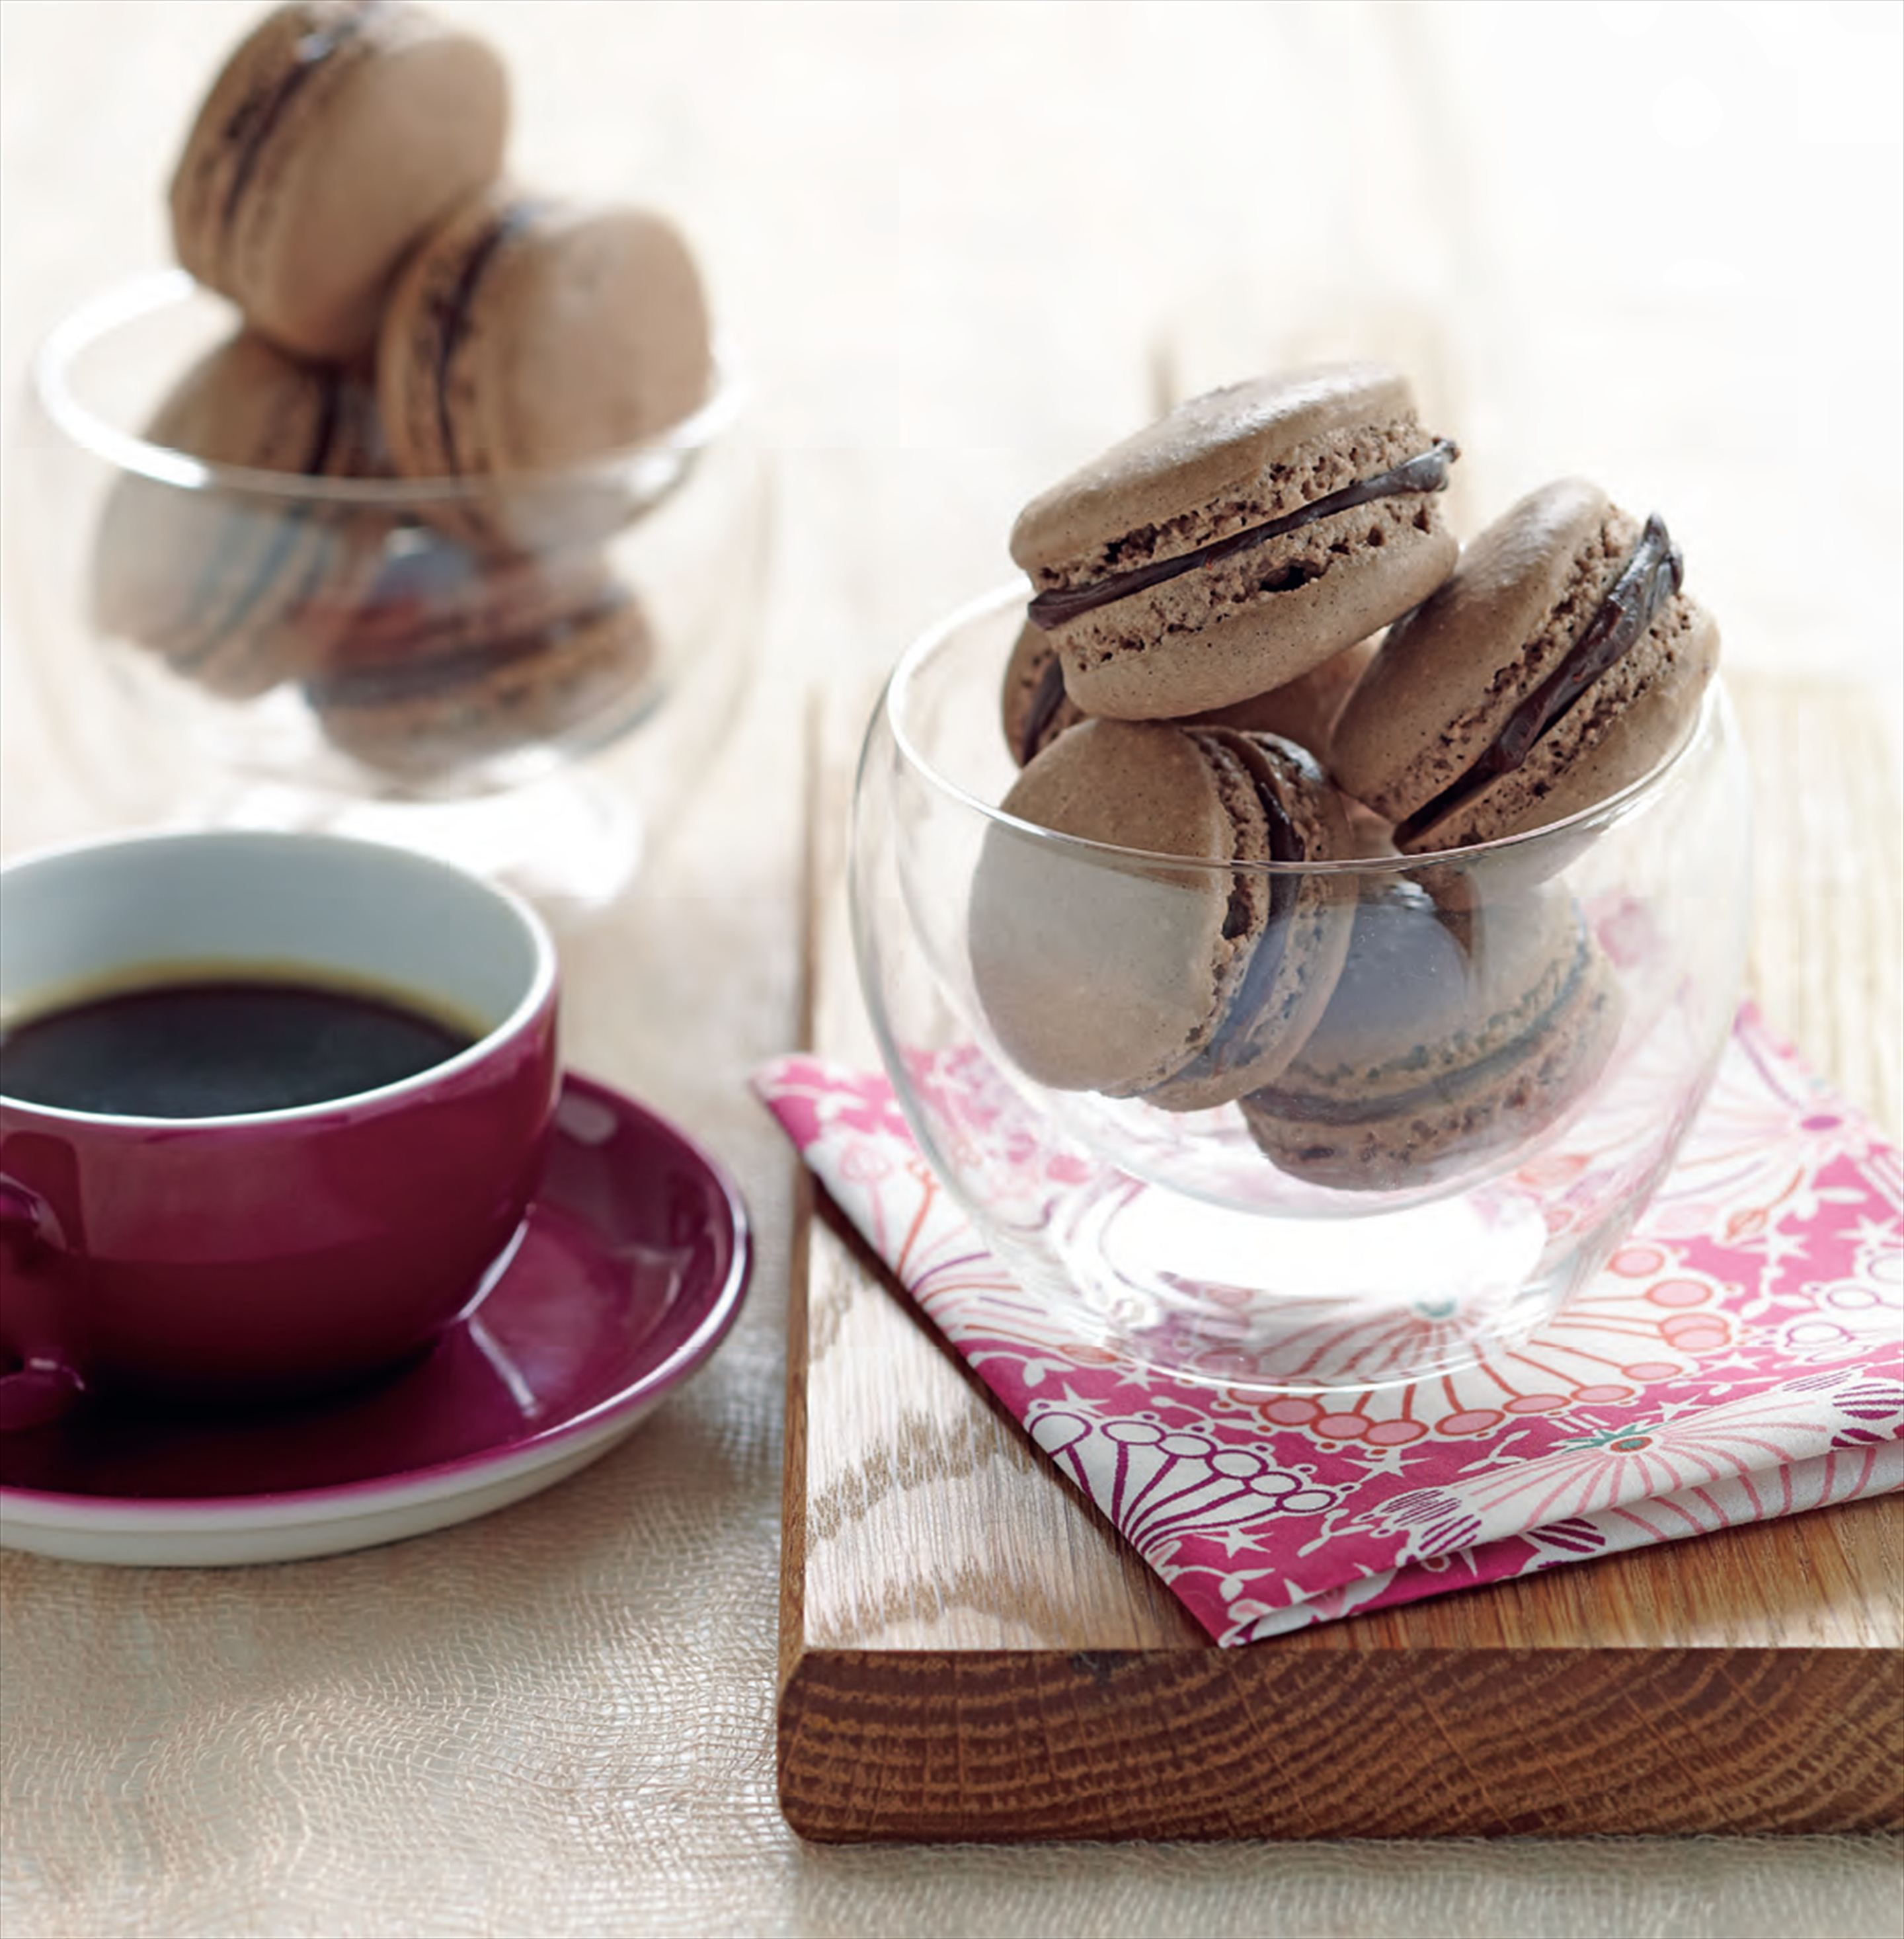 Chocolate macarons with espresso and cocoa nibs